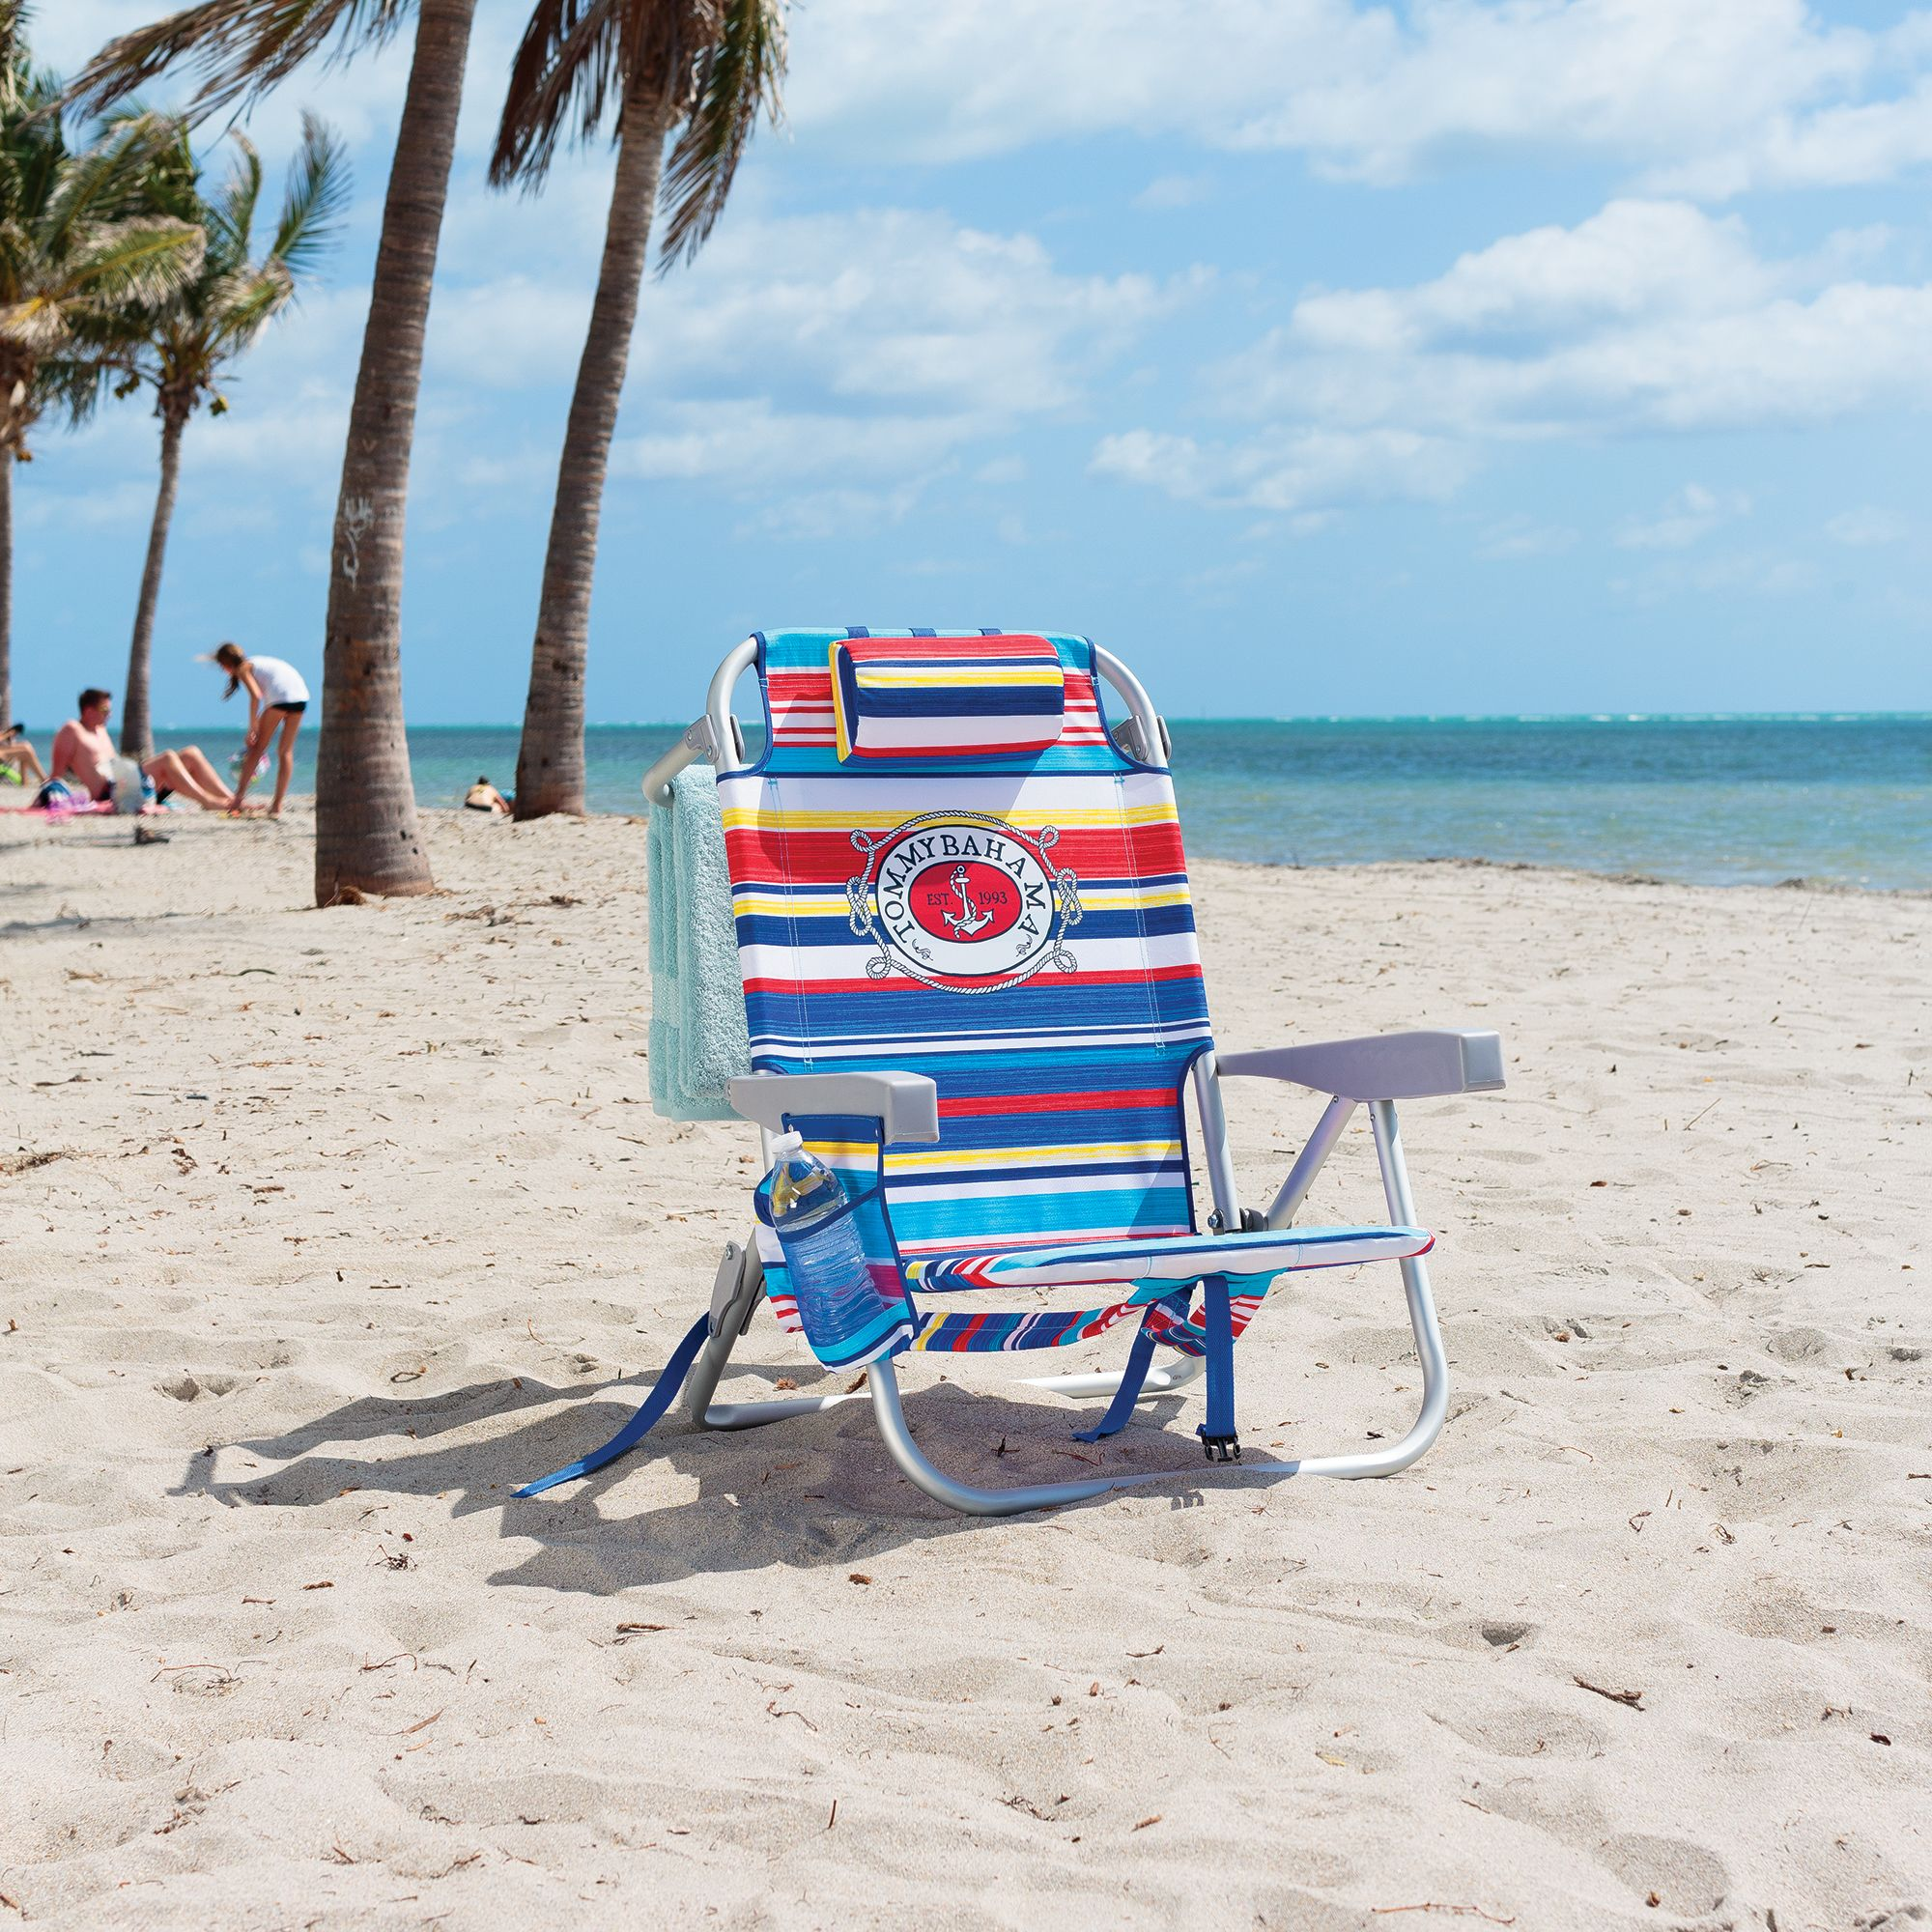 Beach Tommy Chair Tommy Backpack Bahama Bahama jARcL5S43q